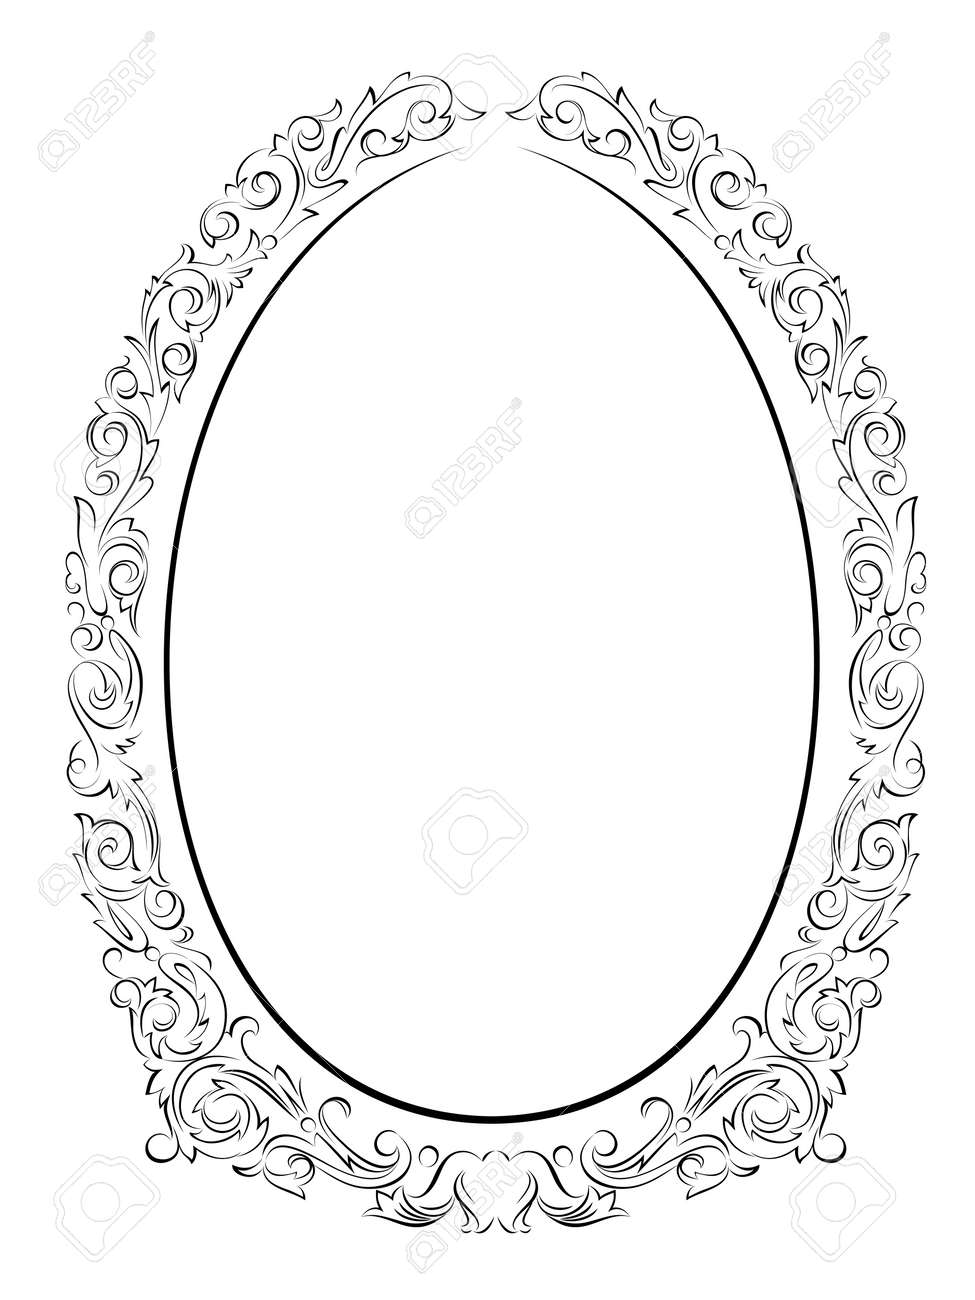 calligraphy penmanship oval baroque frame black isolated, not traced - use it by part Stock Vector - 13295290